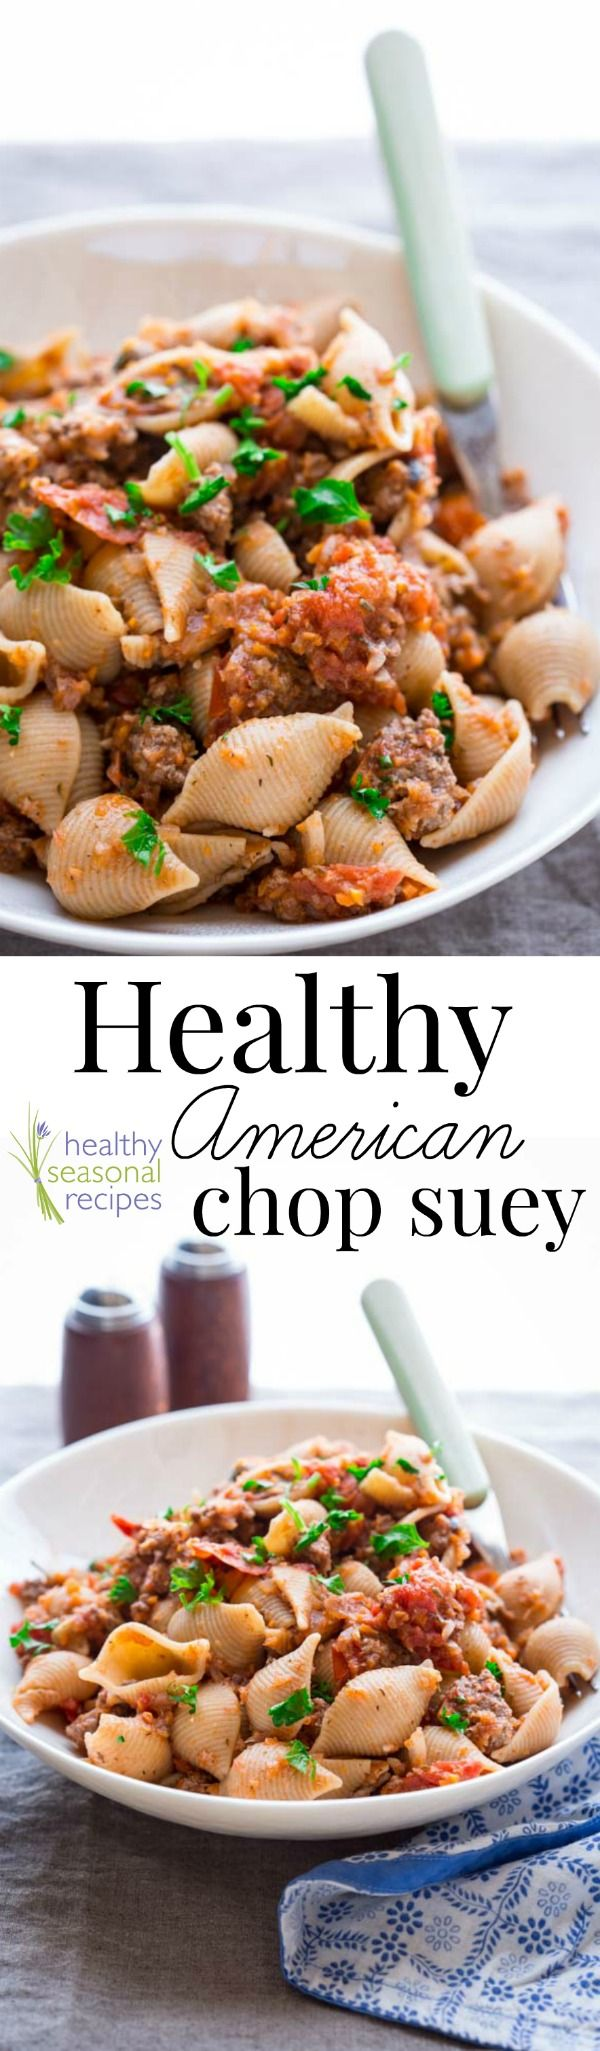 Blog post at Healthy Seasonal Recipes : Healthy American Chop Suey made with grass fed-beef, lots of healthy veggies and whole-grain pasta. This from-scratch, family favorite recip[..]